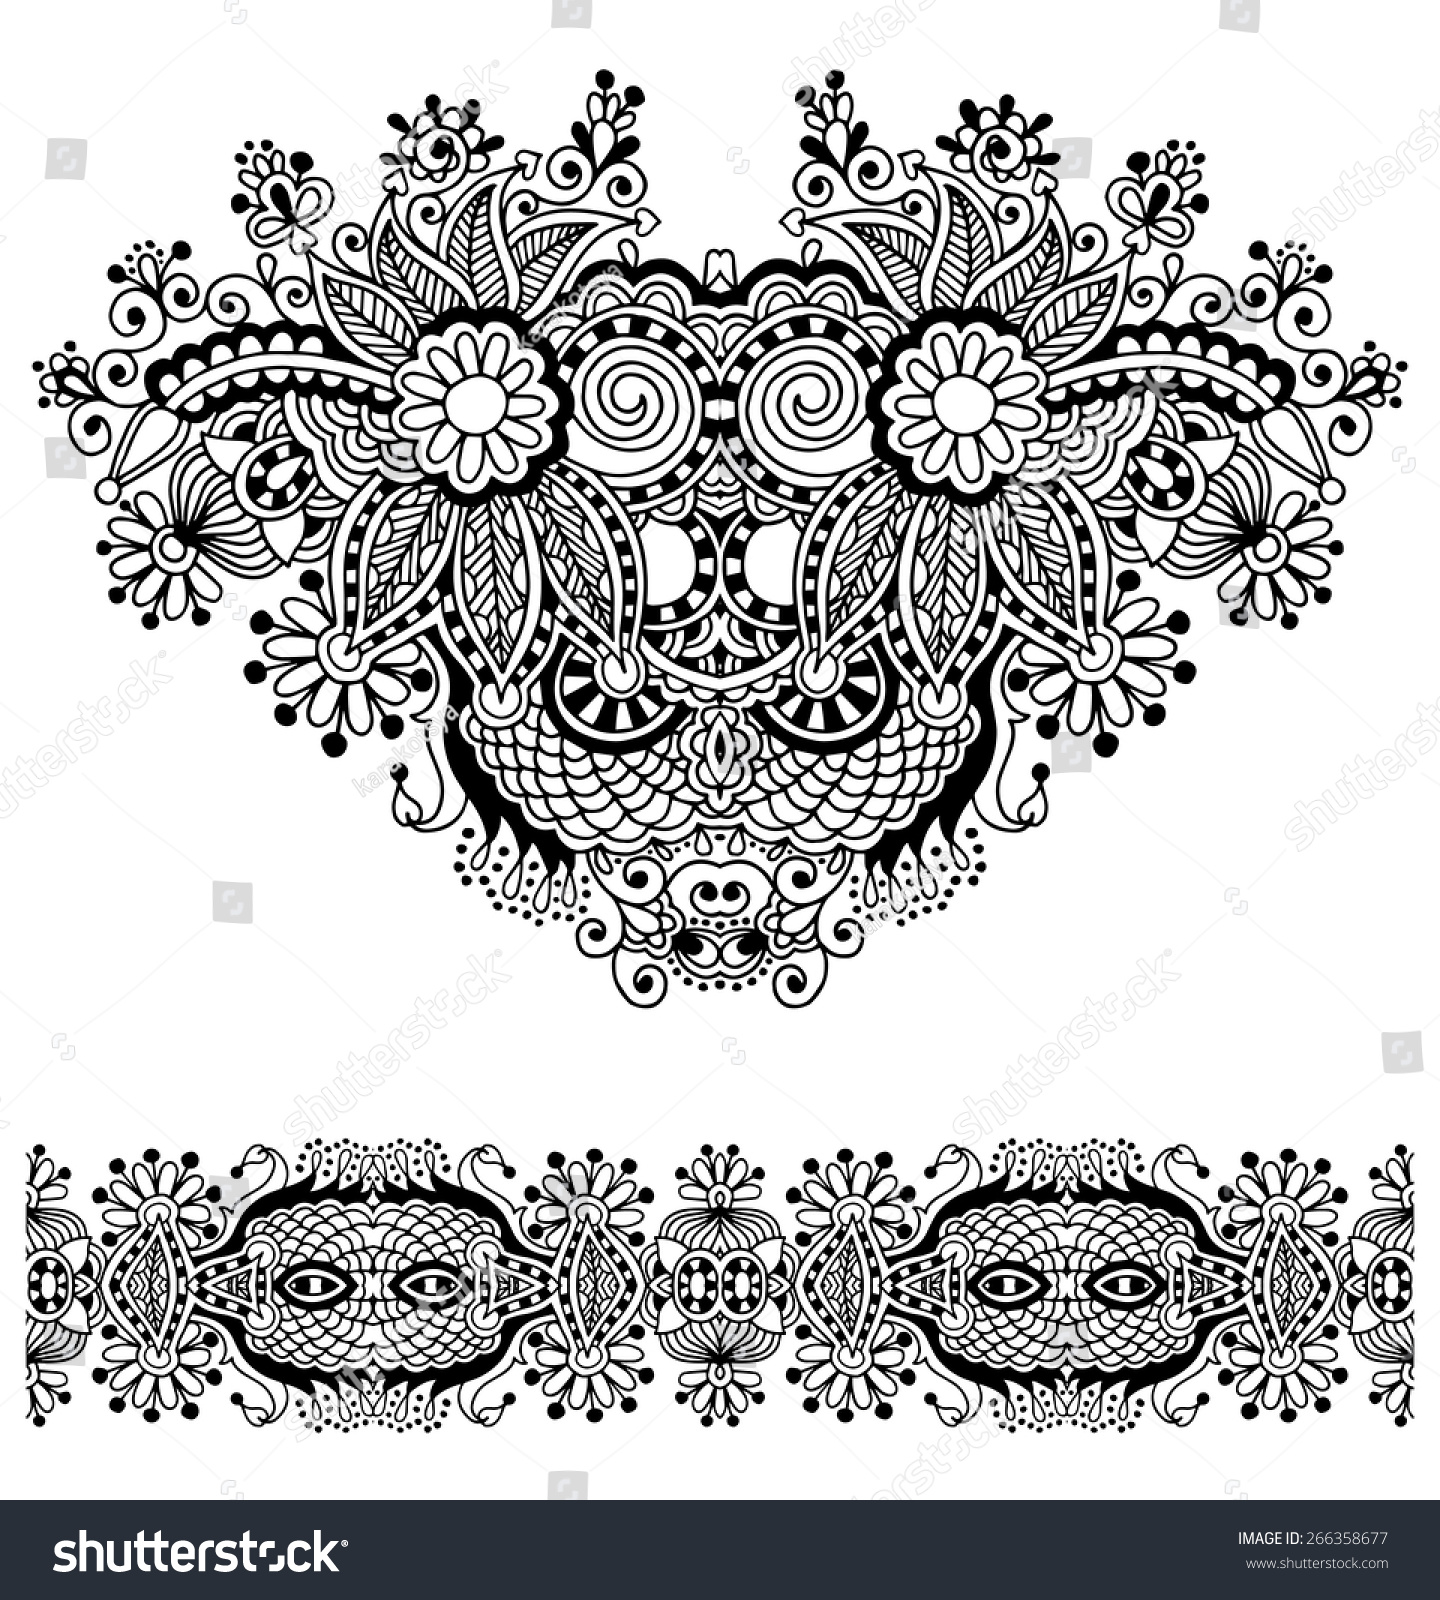 Neckline Ornate Floral Paisley Embroidery Fashion Stock Vector Royalty Free 266358677